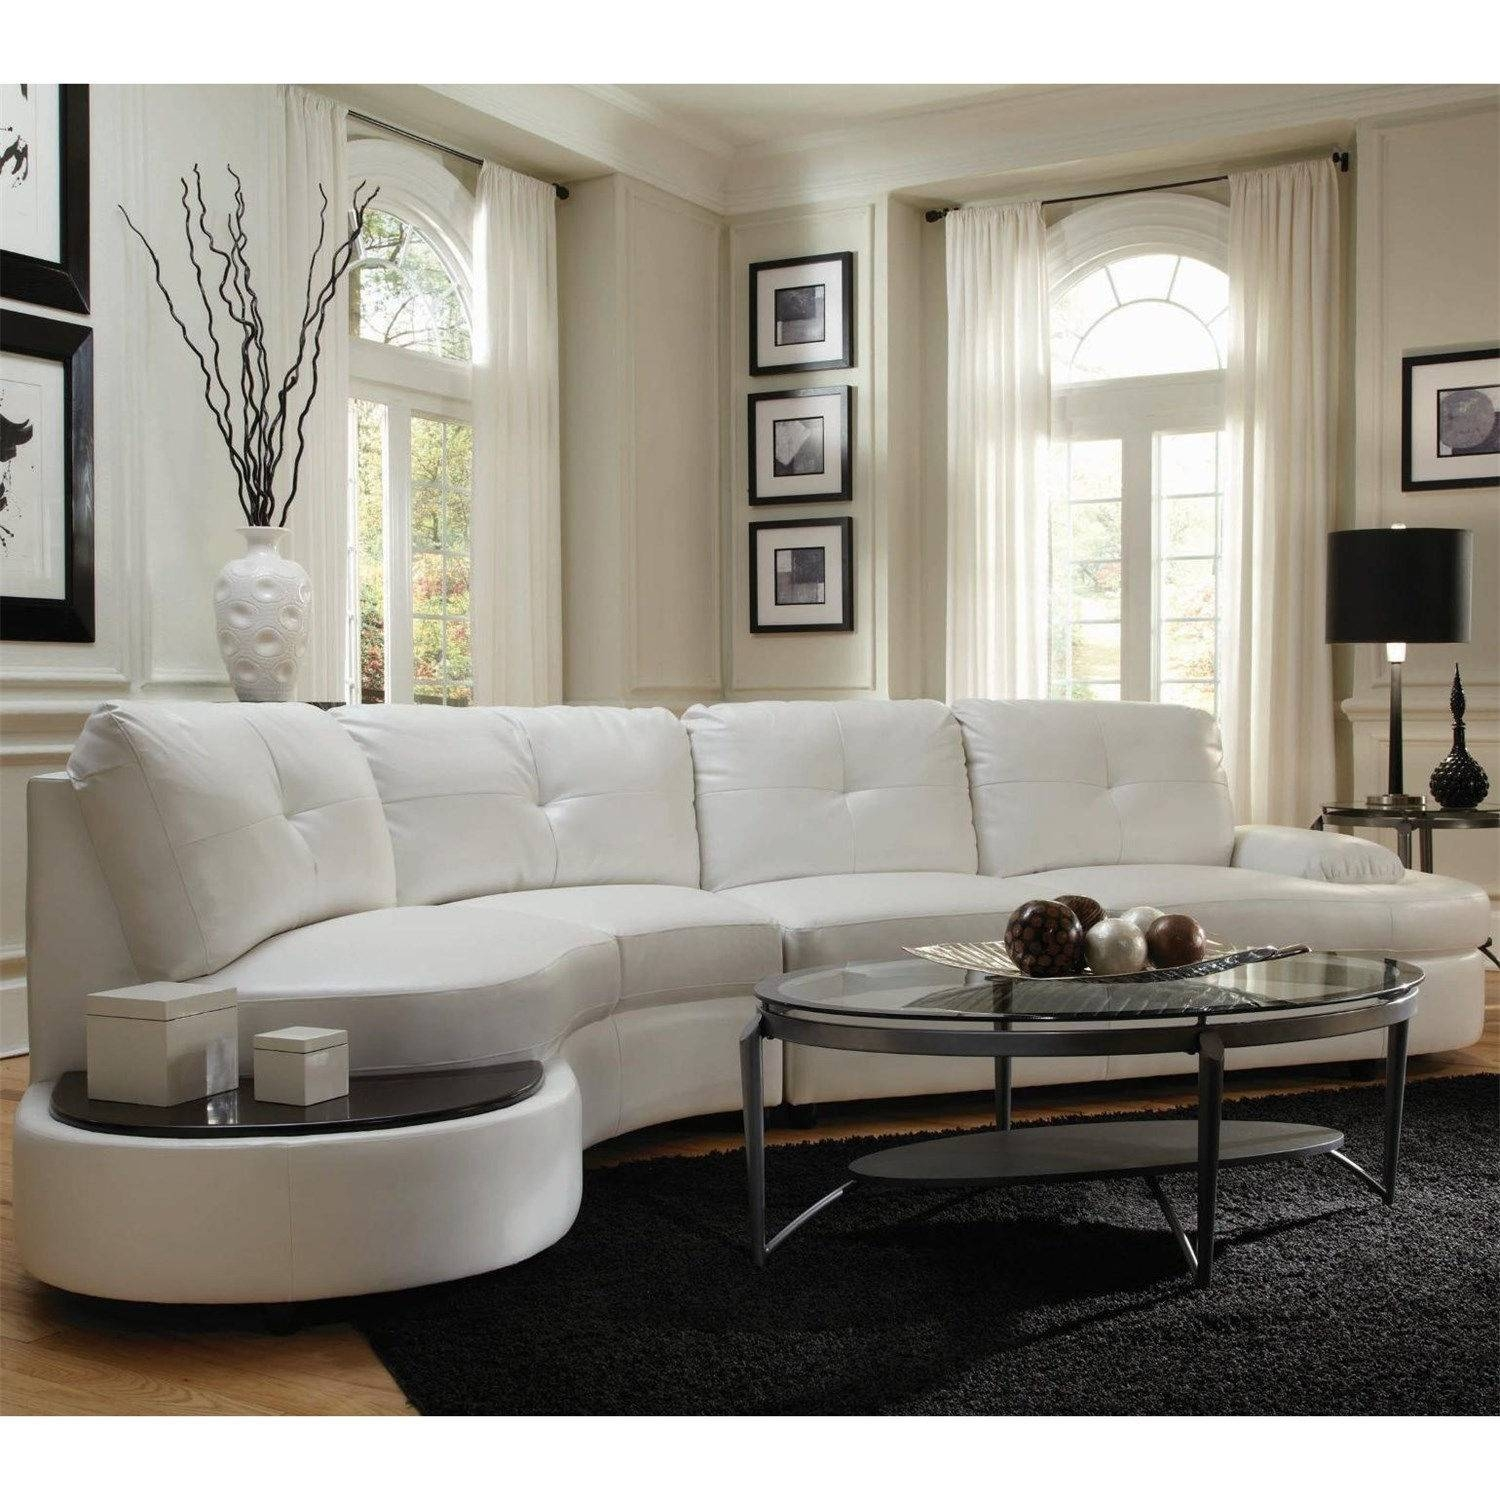 Conversation Sofa Sectional - Artenzo within Conversation Sofa Sectional (Image 11 of 30)